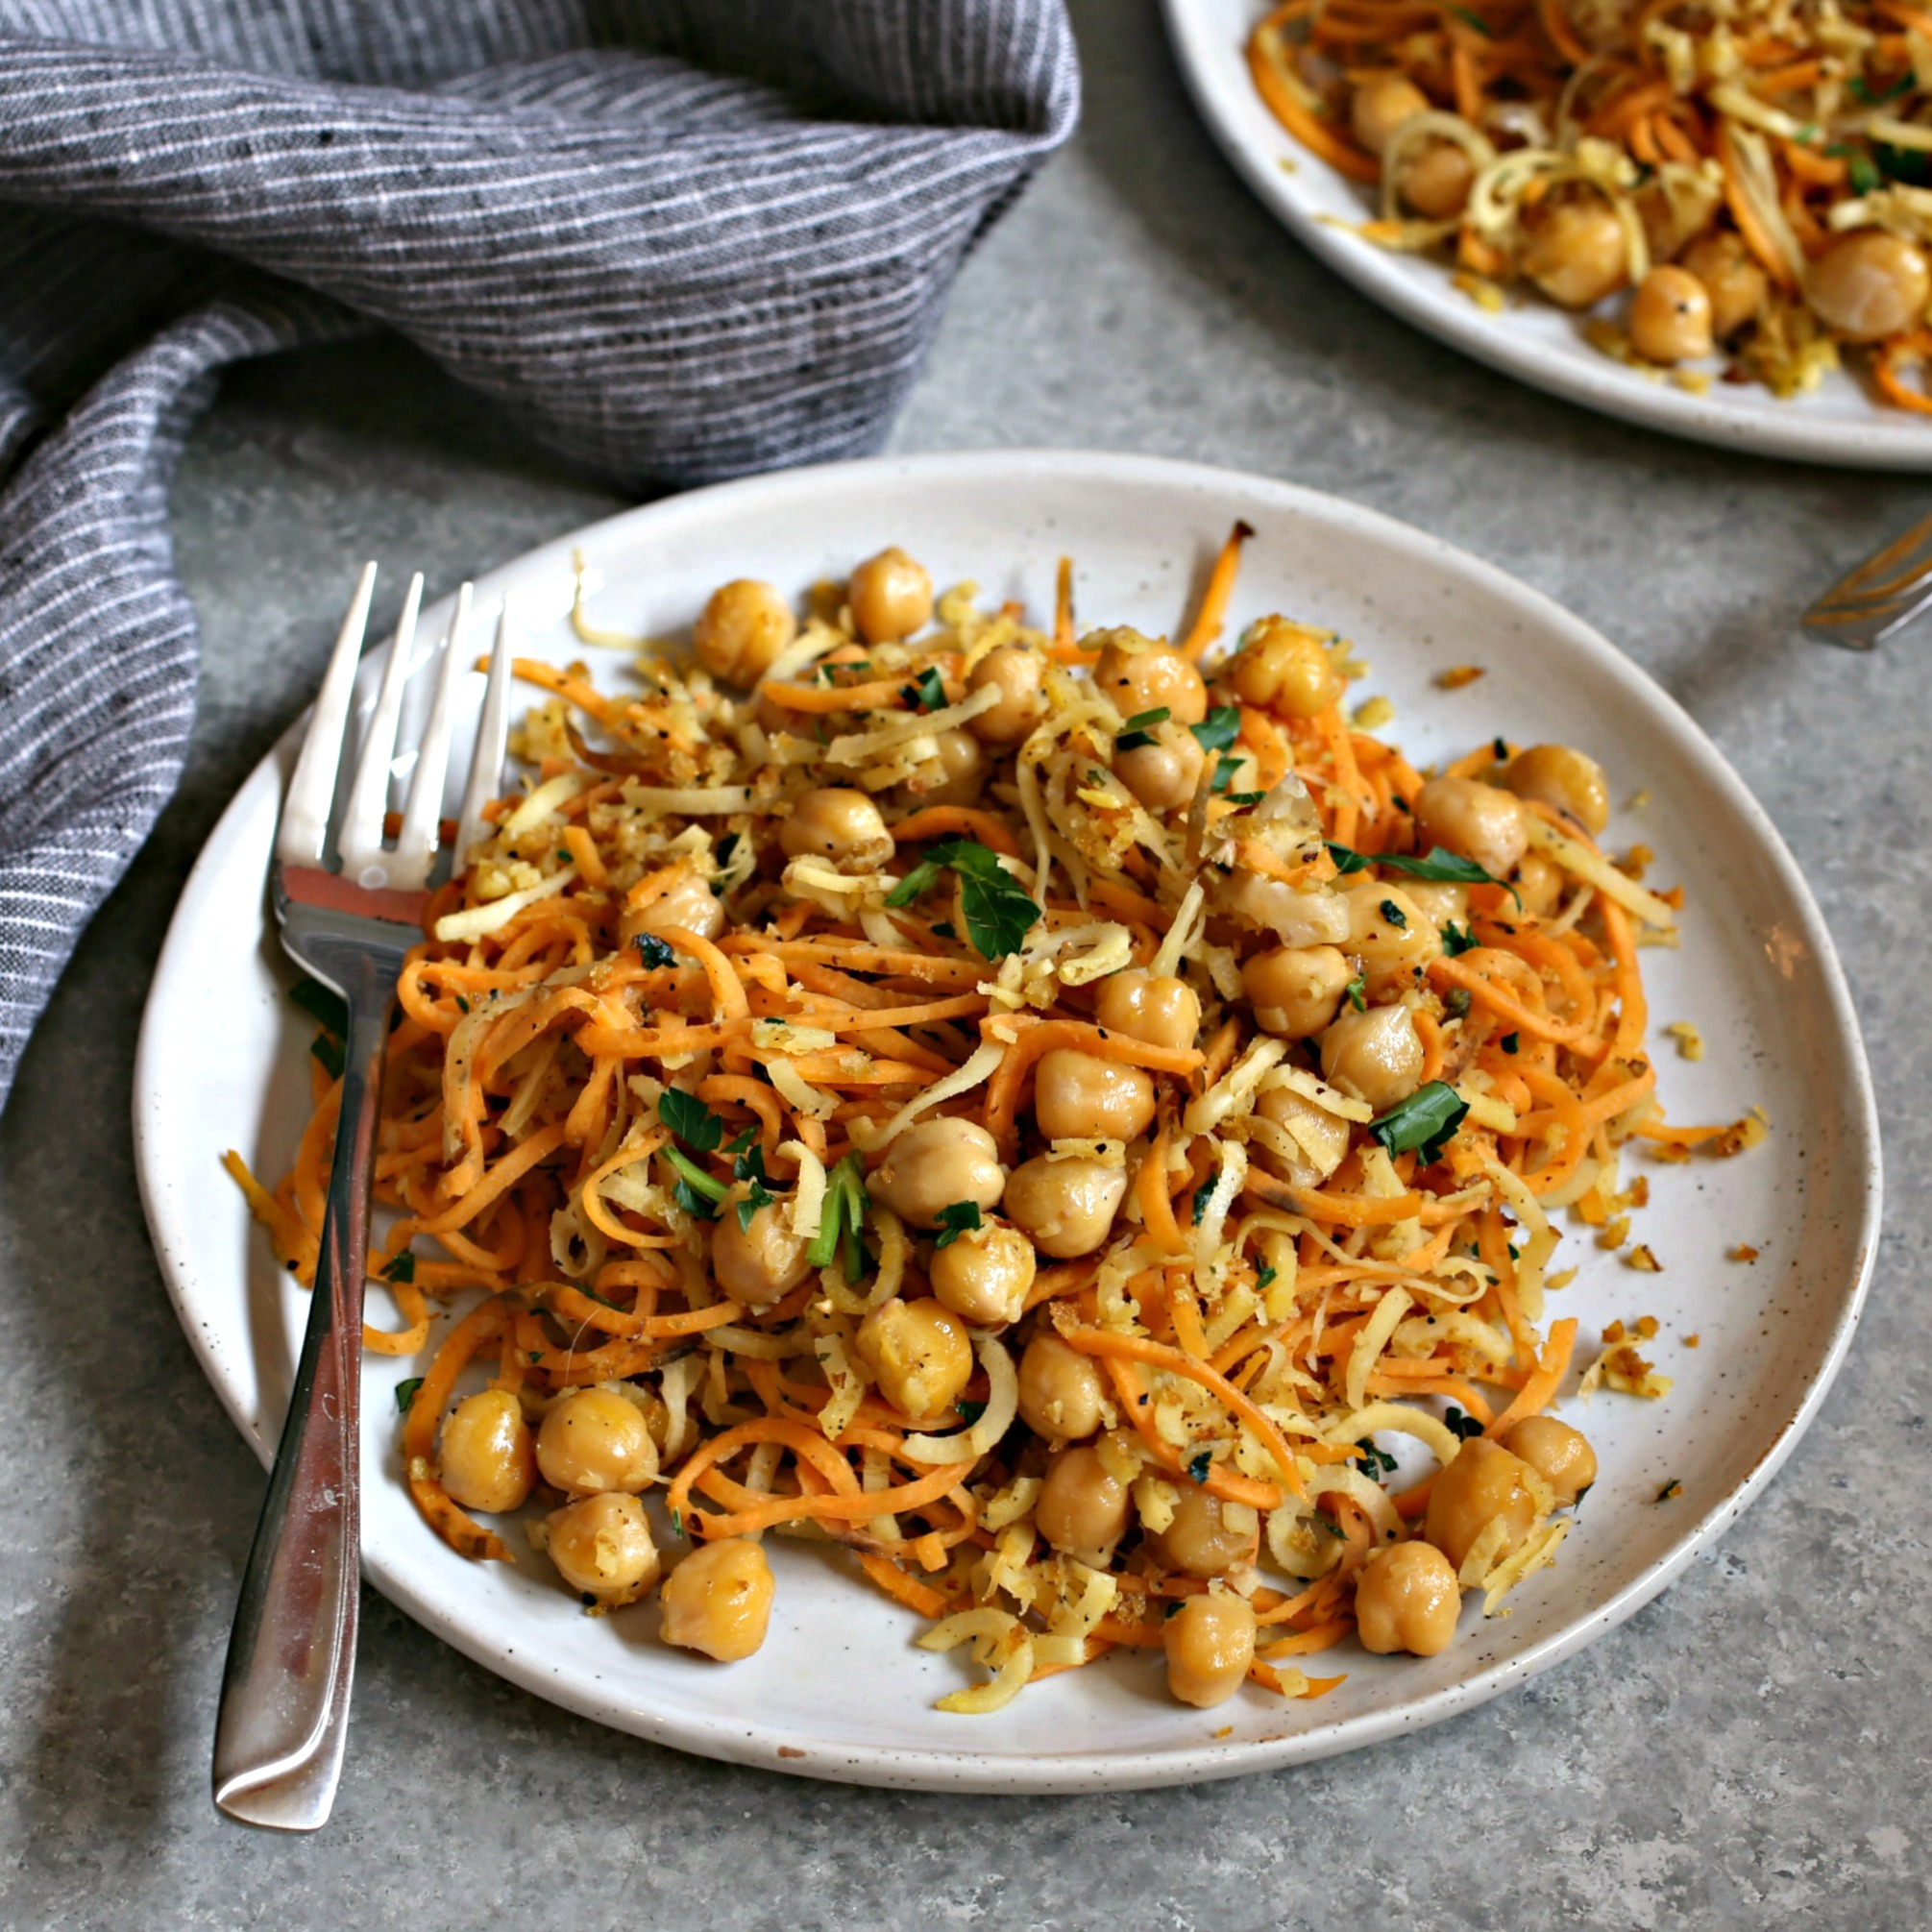 Recipe for spiralized sweet potatoes and parsnips with chickpeas and a crispy breadcrumb topping.